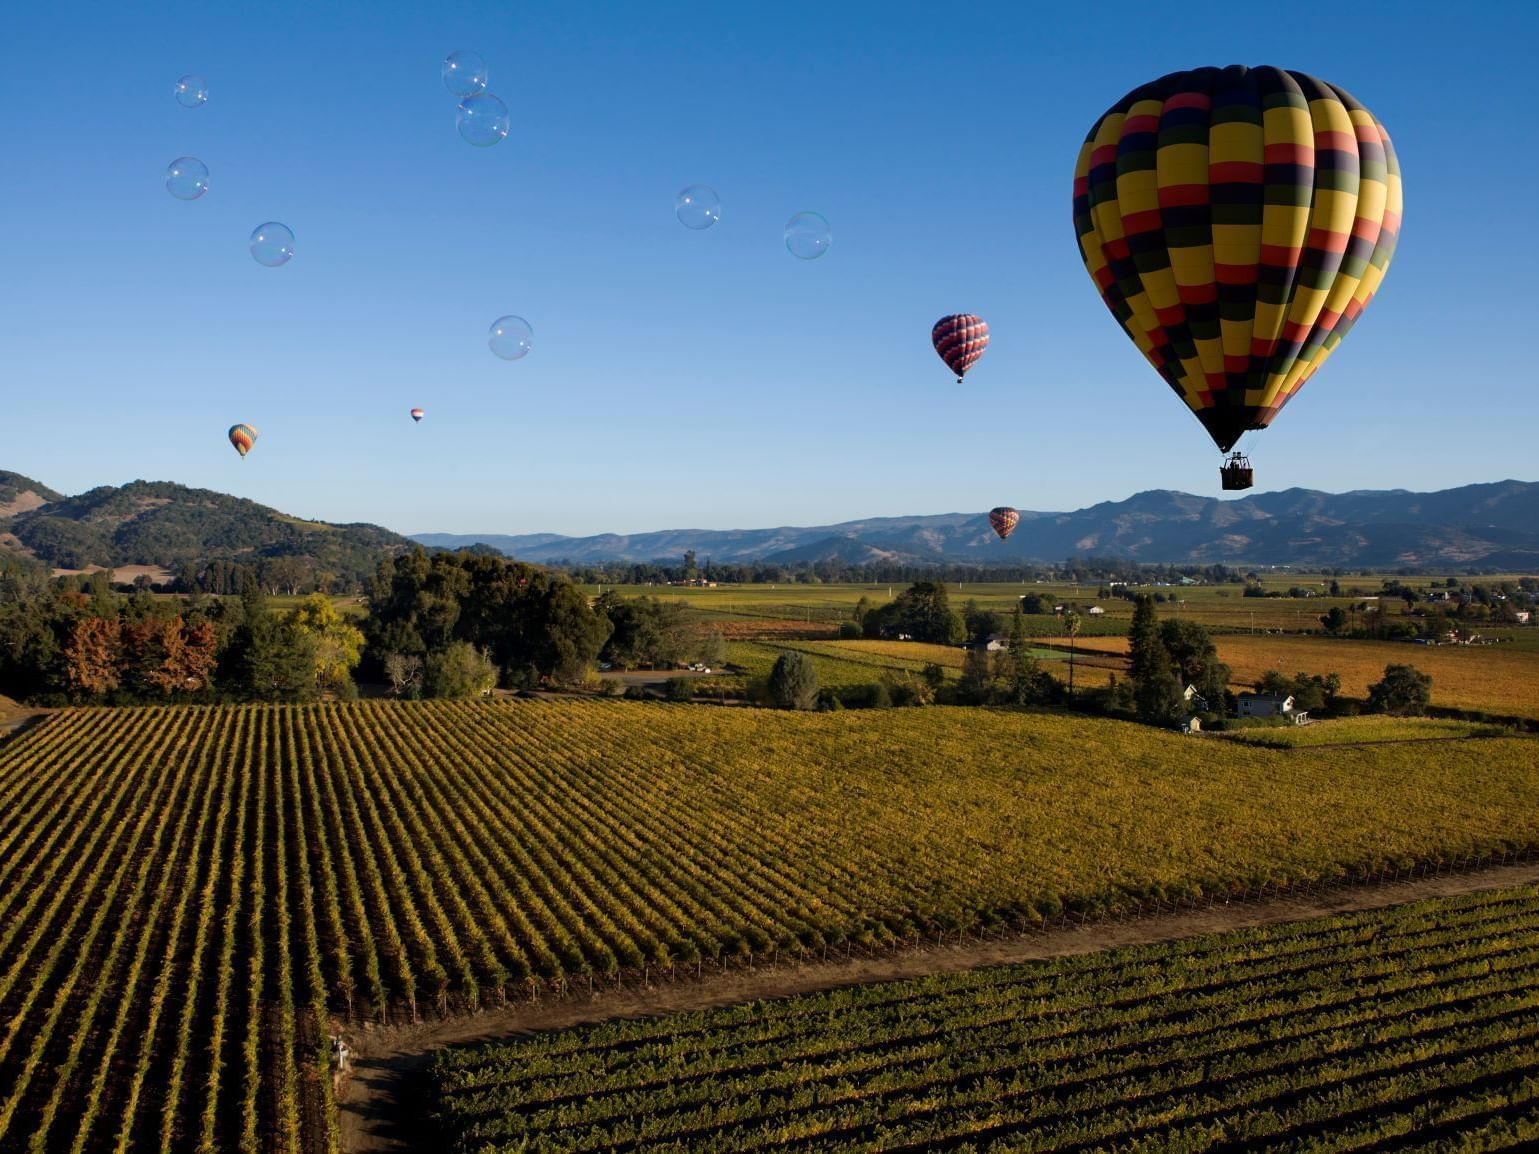 Hot air balloons hovering over Allegretto Vineyard vines